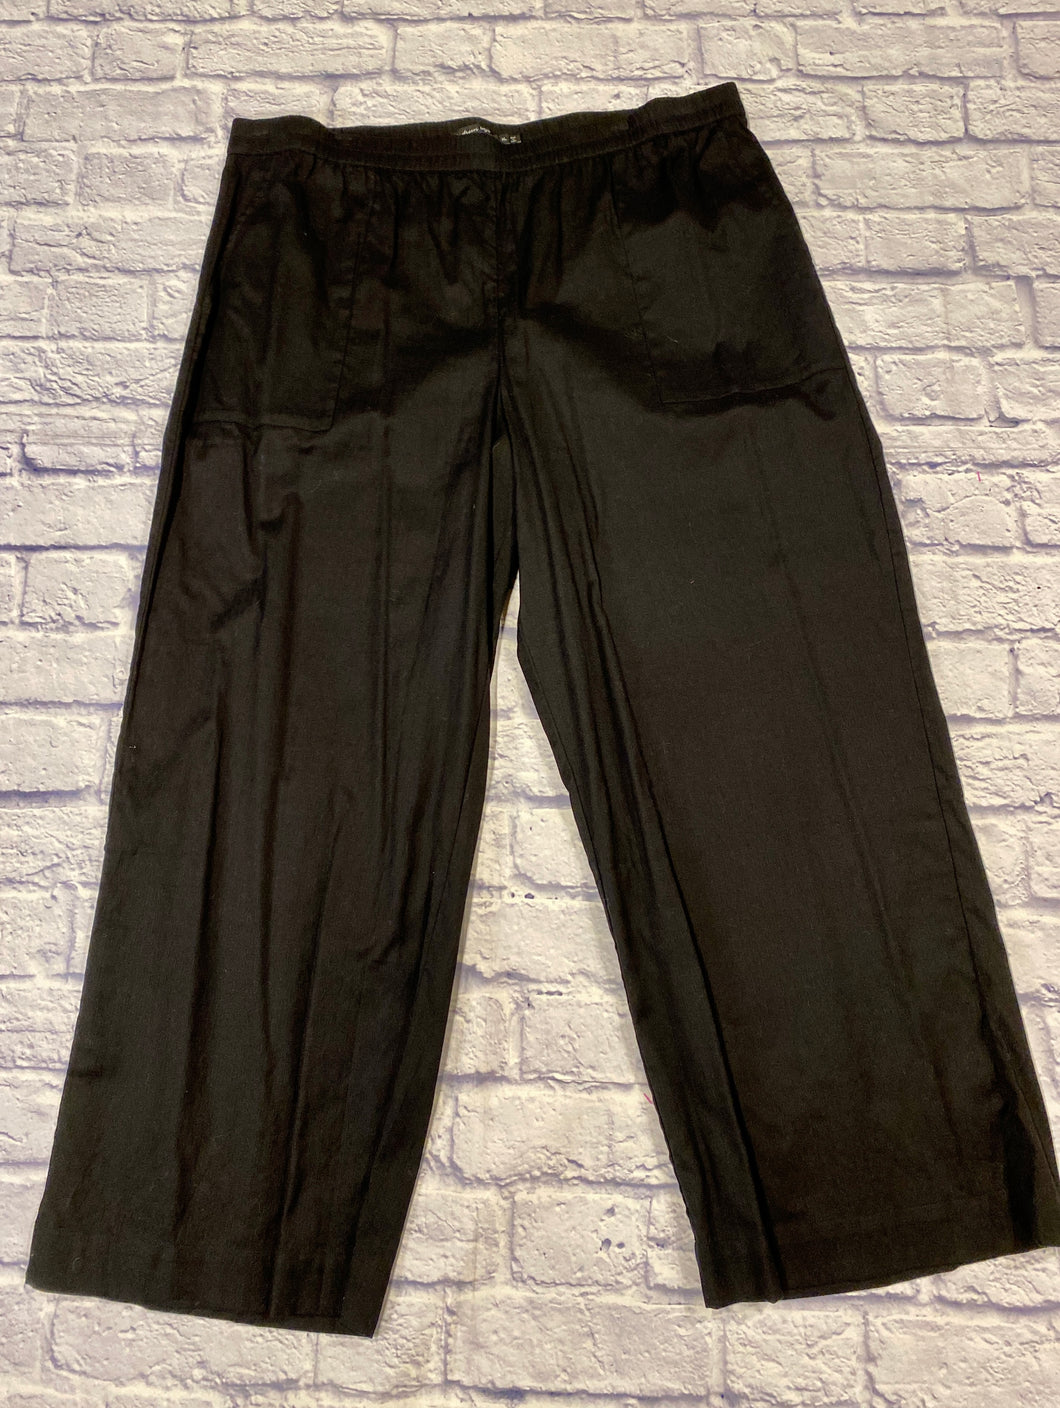 Gundrun black linen pants with elastic waistband and two side pockets.  Wide leg hems.  Like new!